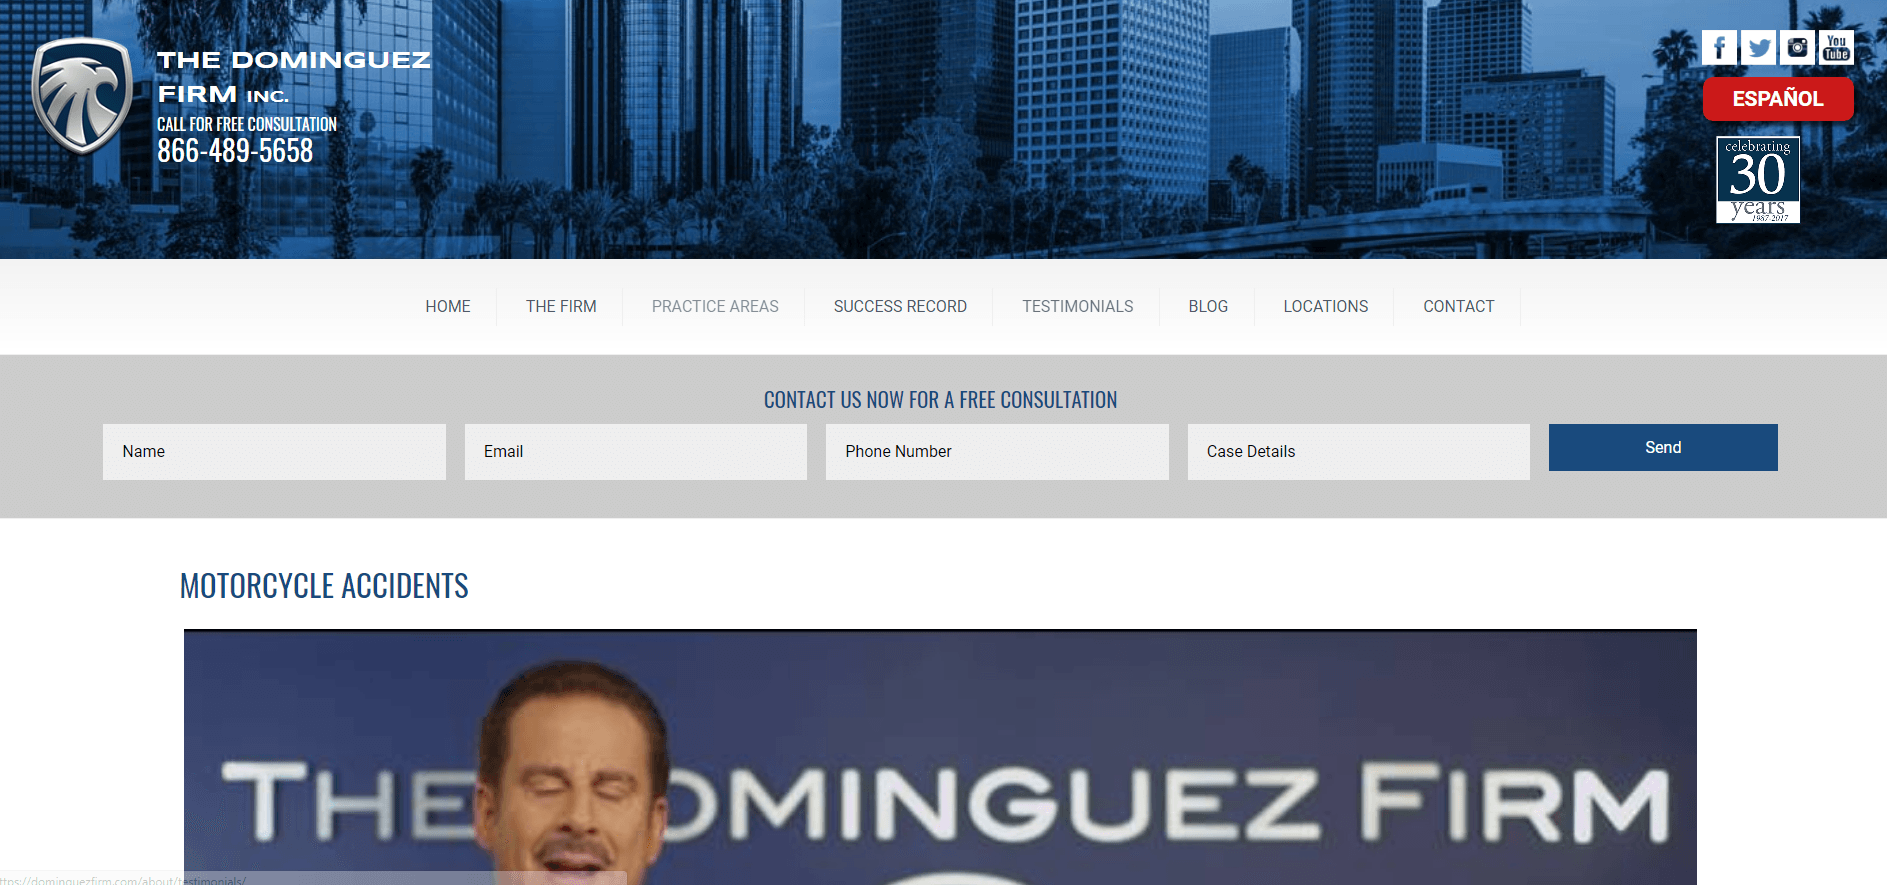 dominguez law firm ppc landing page above the fold